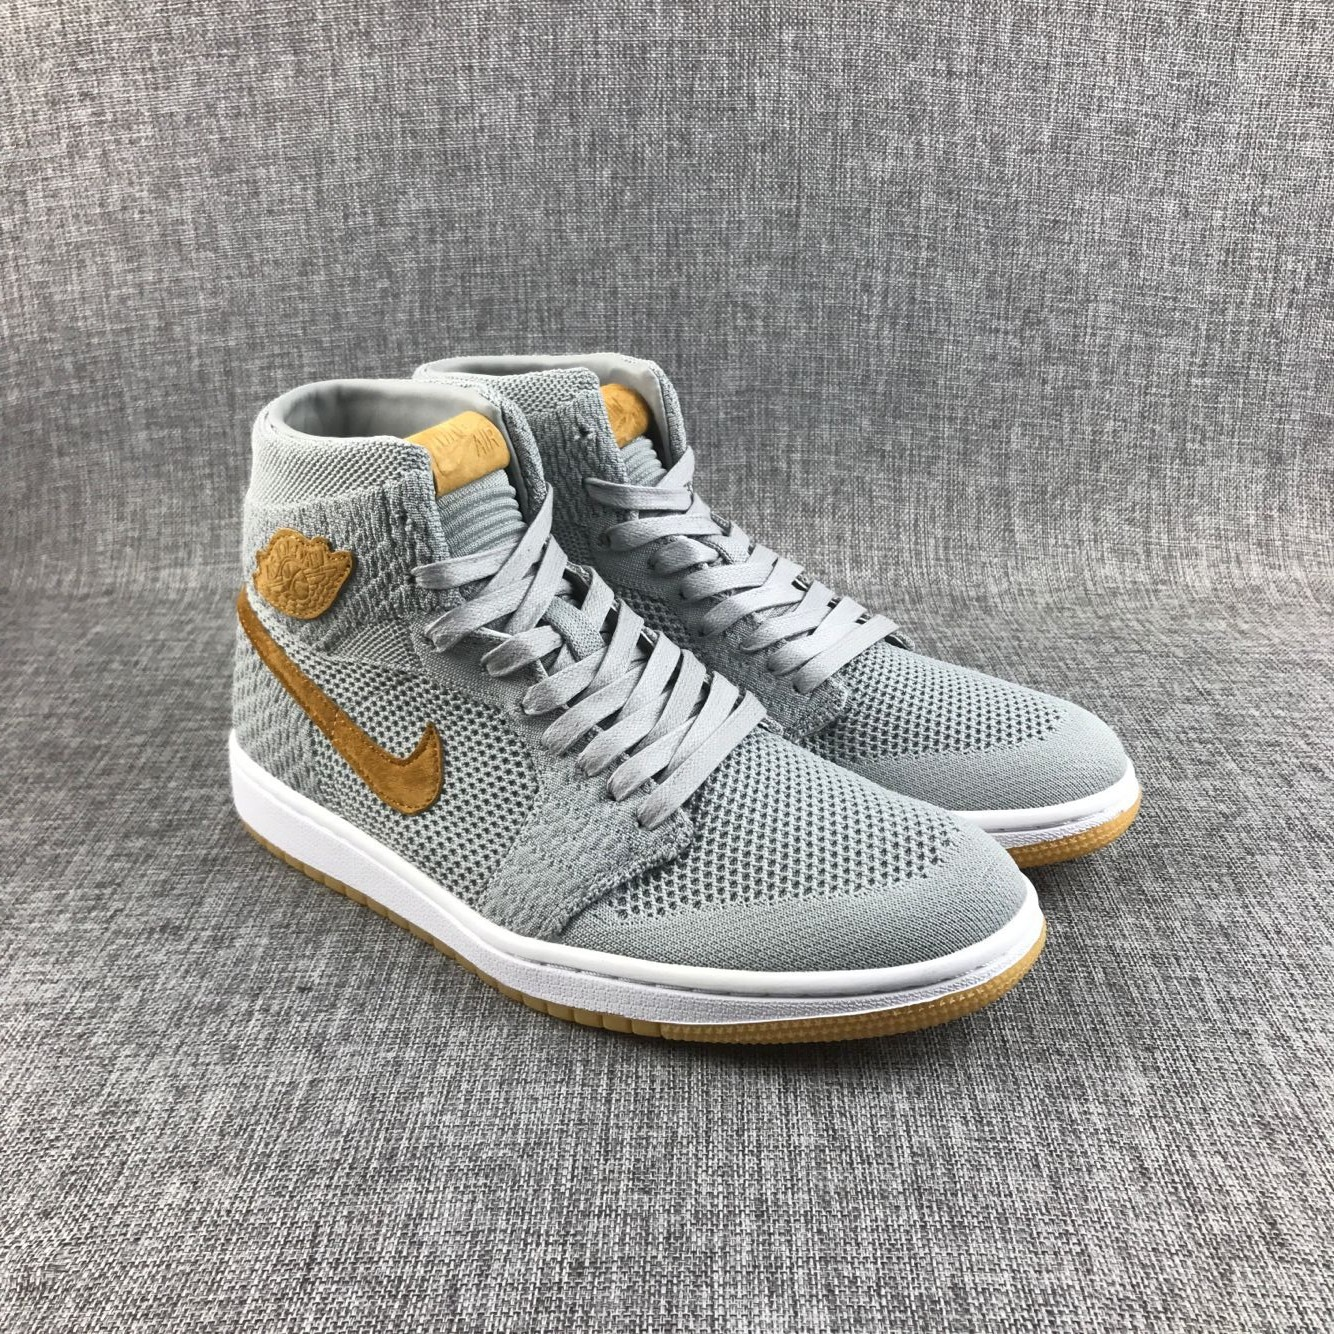 New Air Jordan 1 Flyknit Grey Yellow Shoes